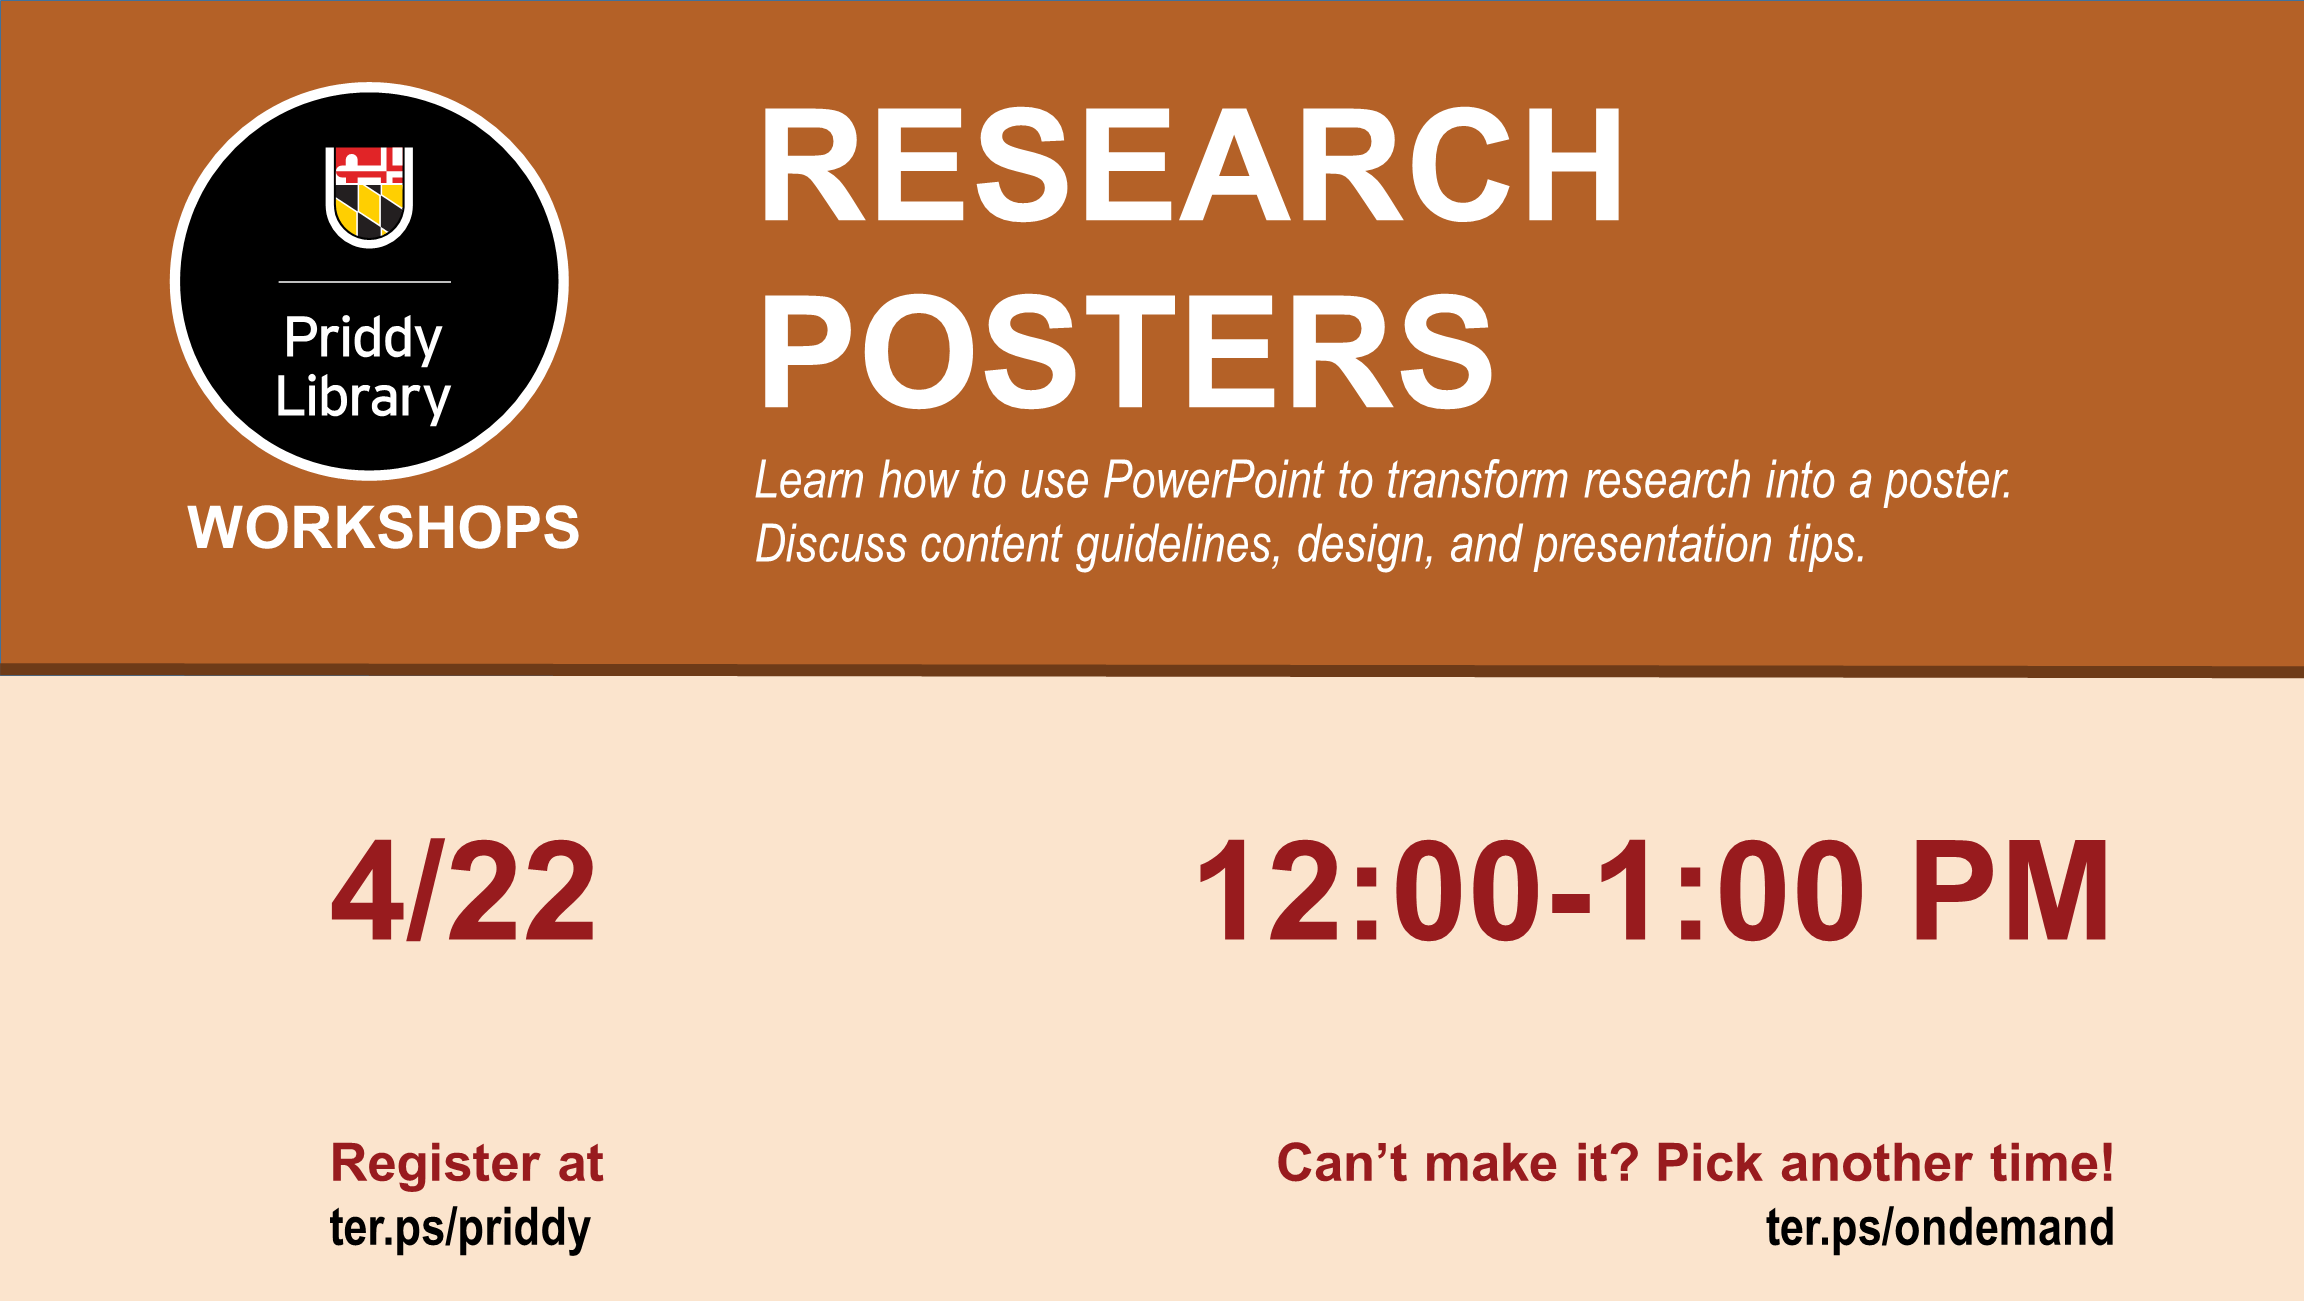 Research Posters flyer